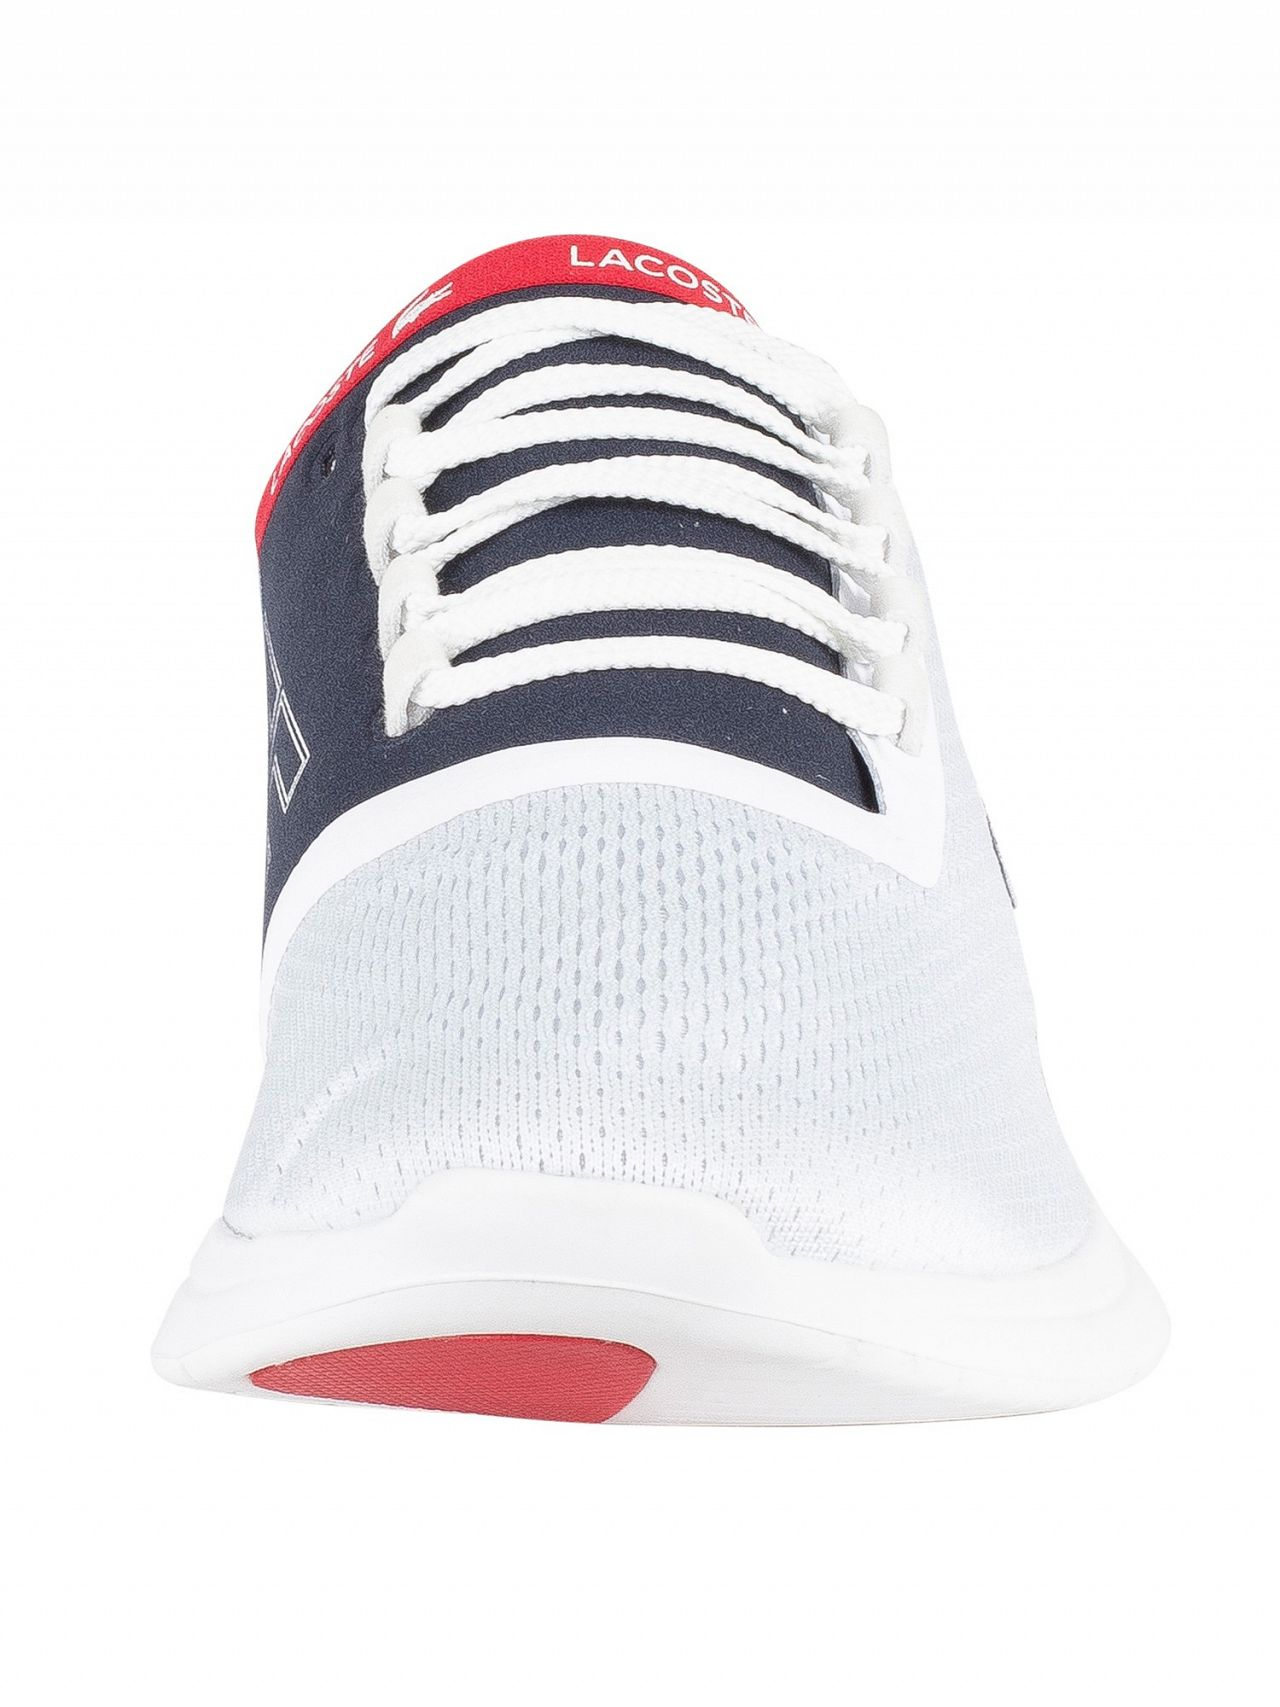 fdf44984325fa Lacoste White/Navy/Red LT Fit 119 5 SMA Trainers